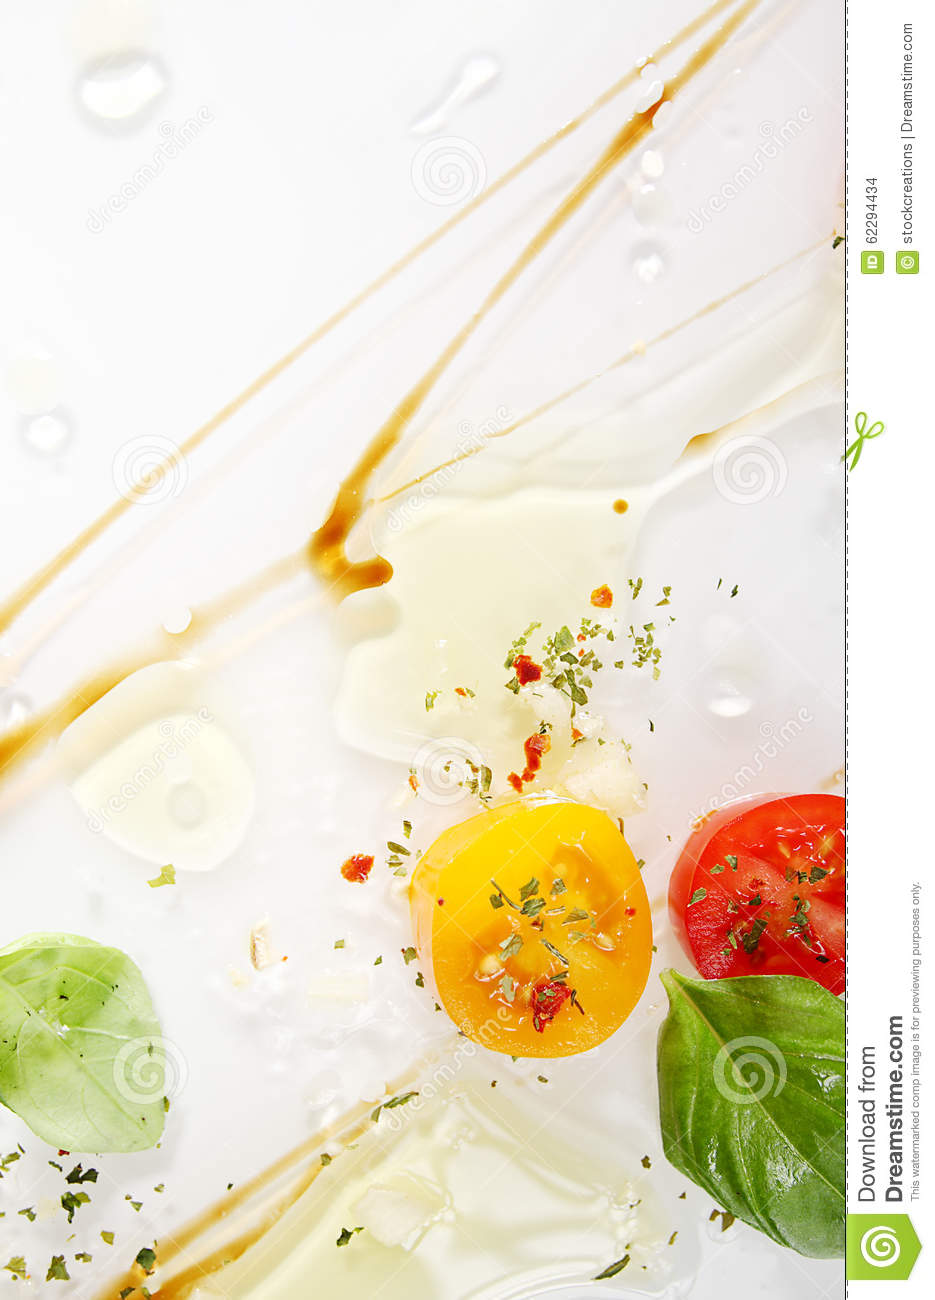 Abstract background for italian cuisine stock photo for Artistic cuisine